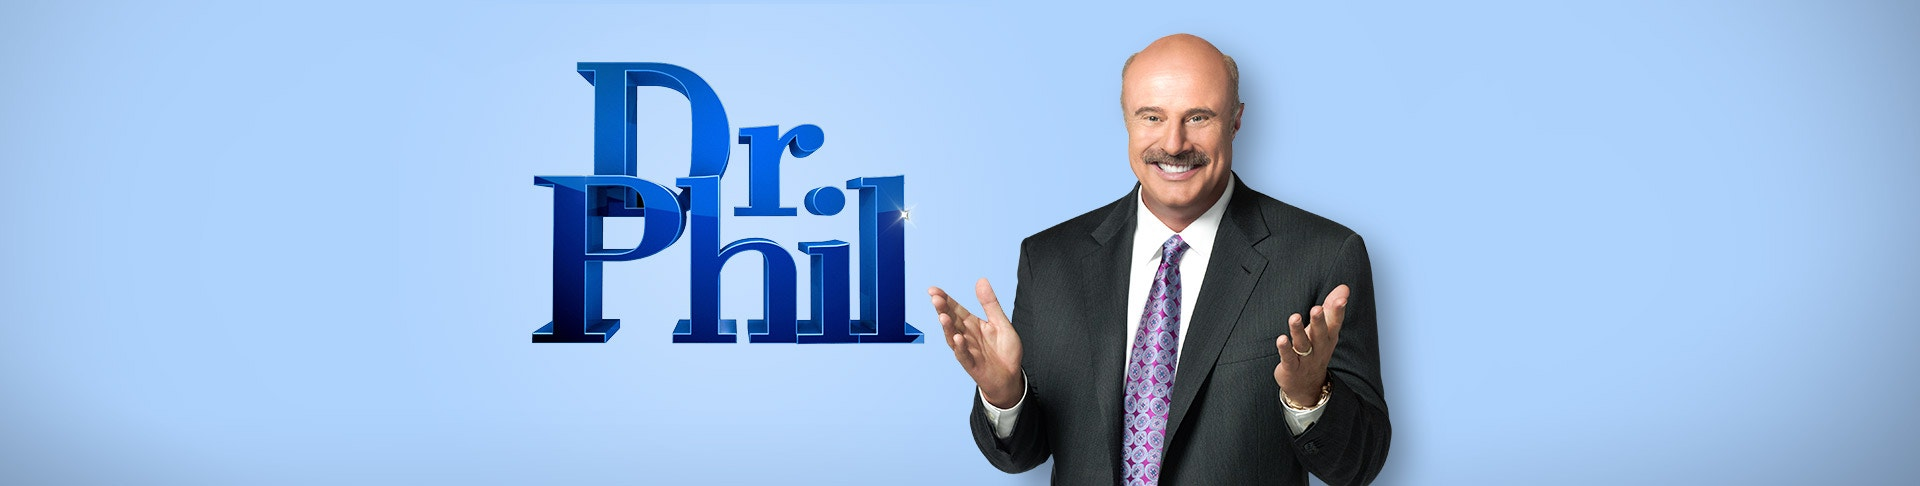 Dr Phil online dating show